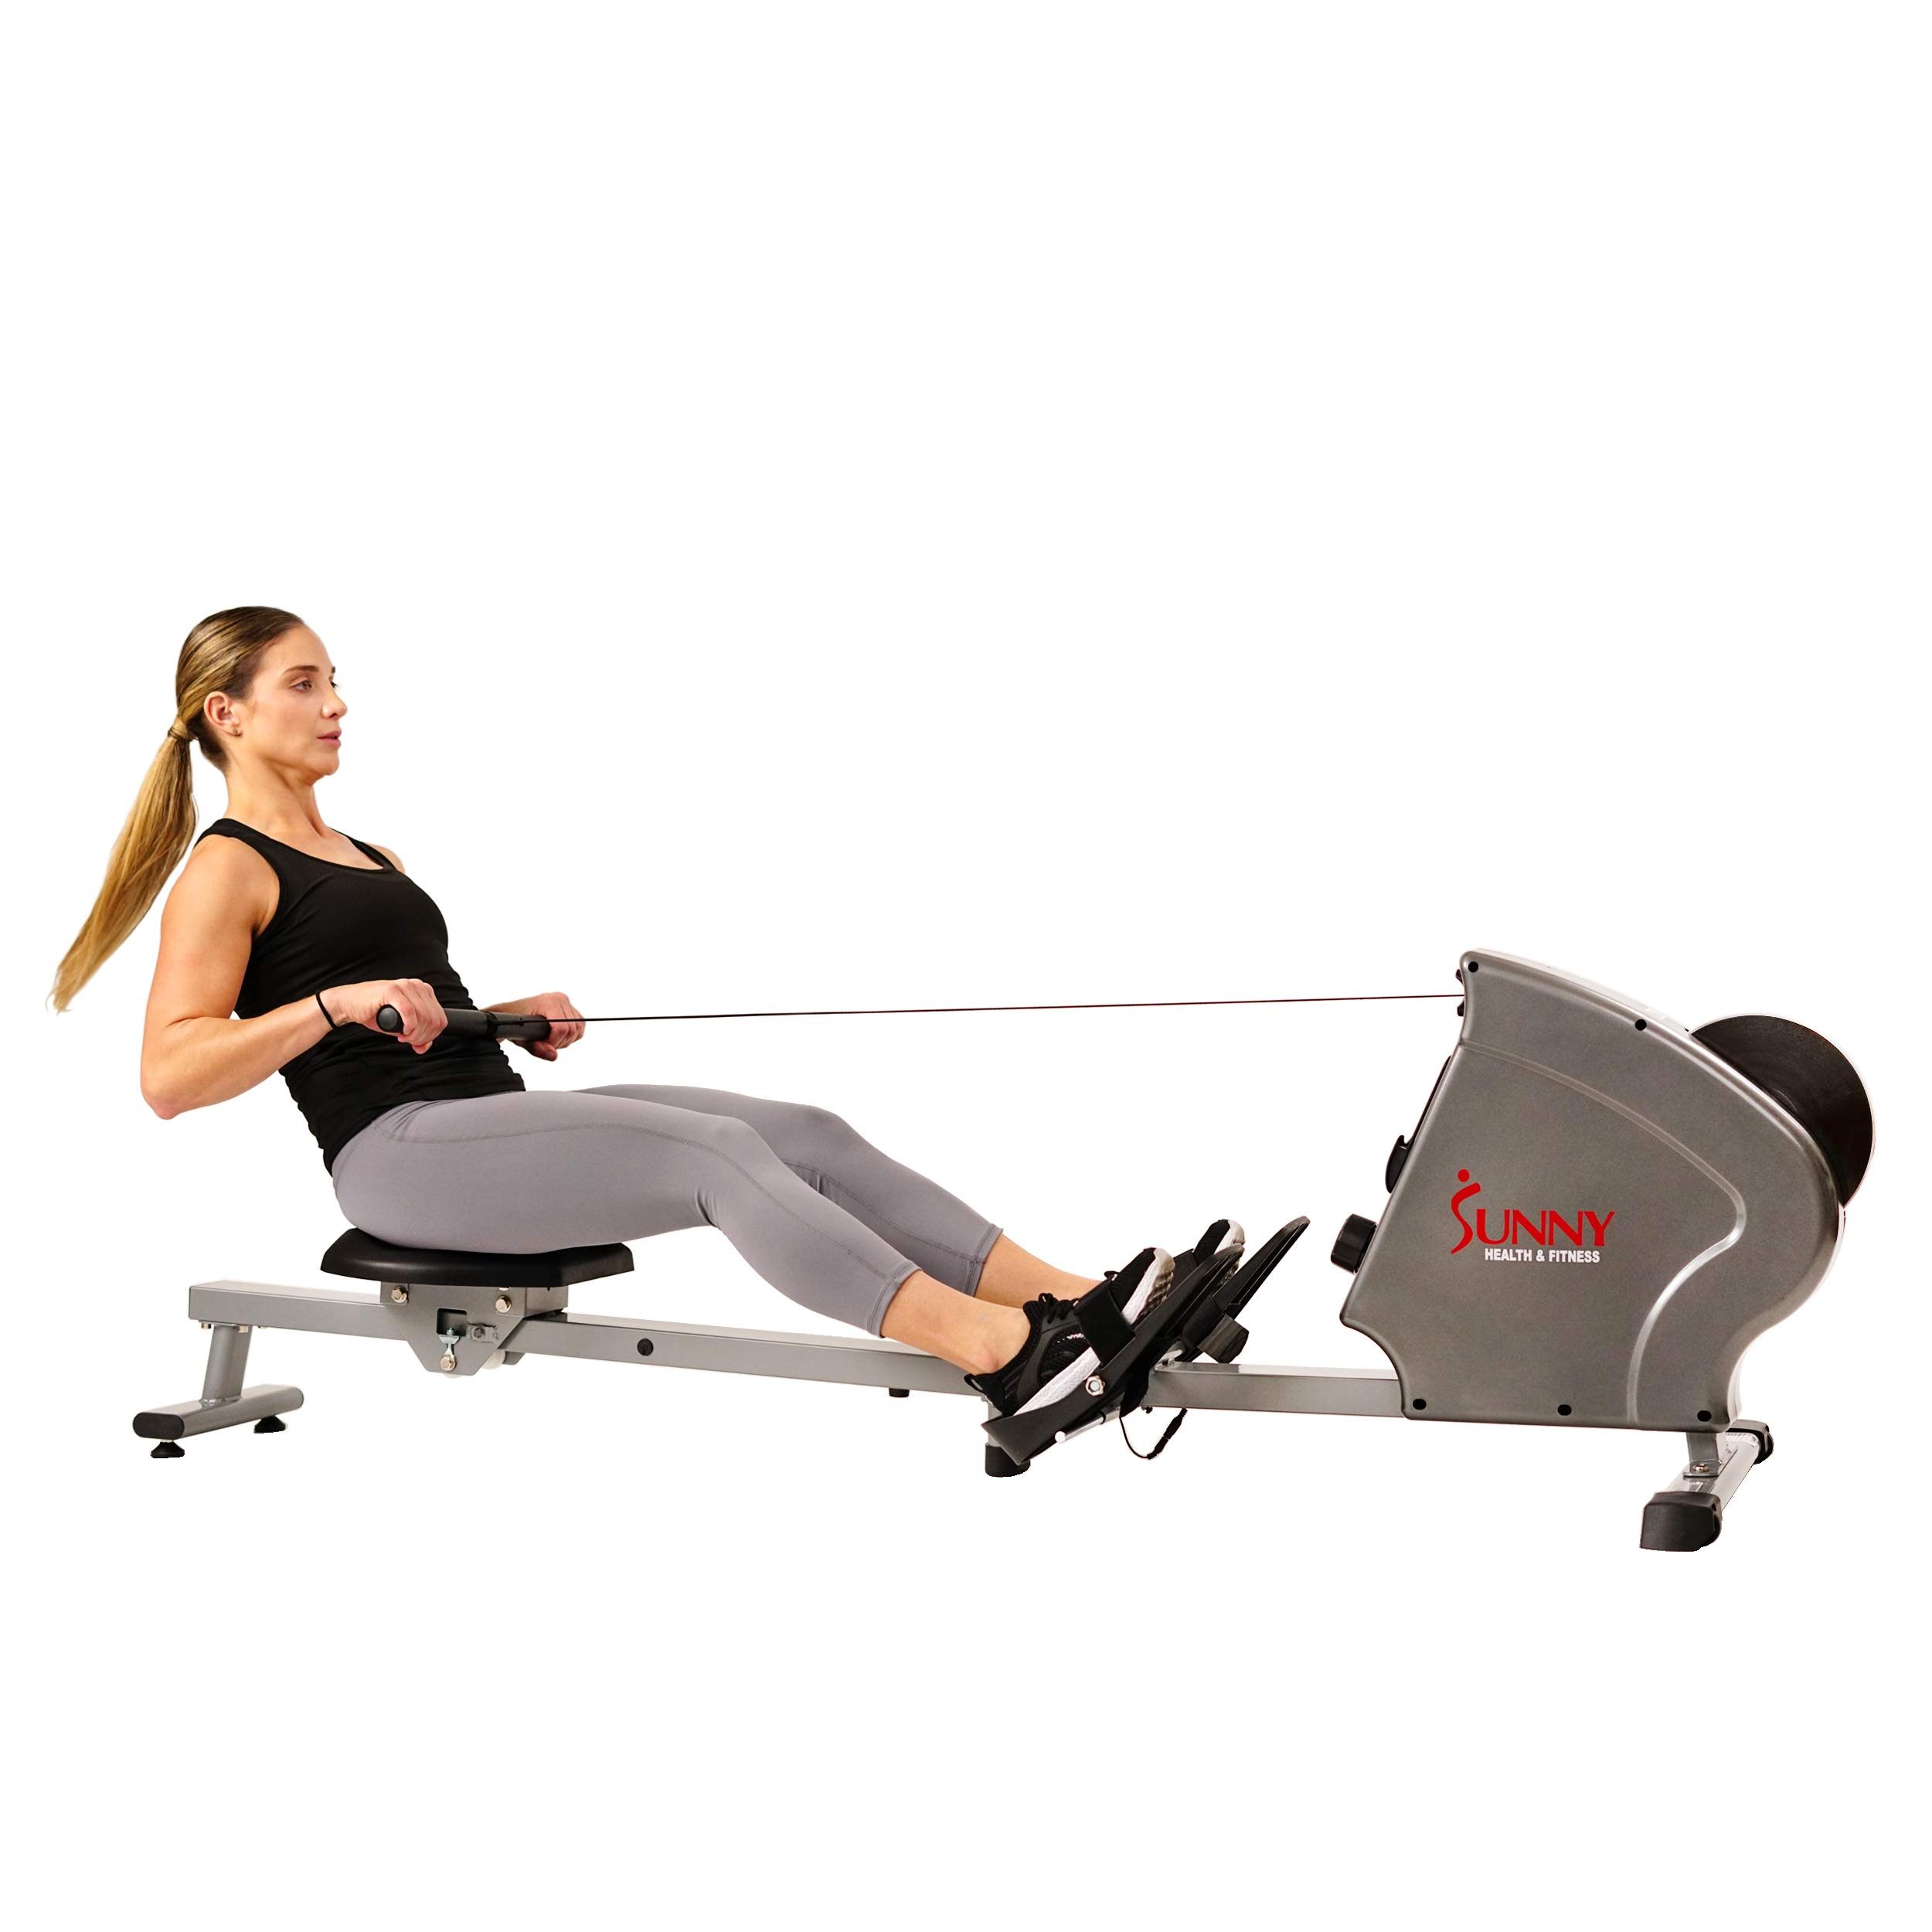 Sunny Health & Fitness SF-RW5856 Magnetic Rowing Machine Rower, 11 lb. Flywheel and LCD Monitor with Tablet Holder, Gray